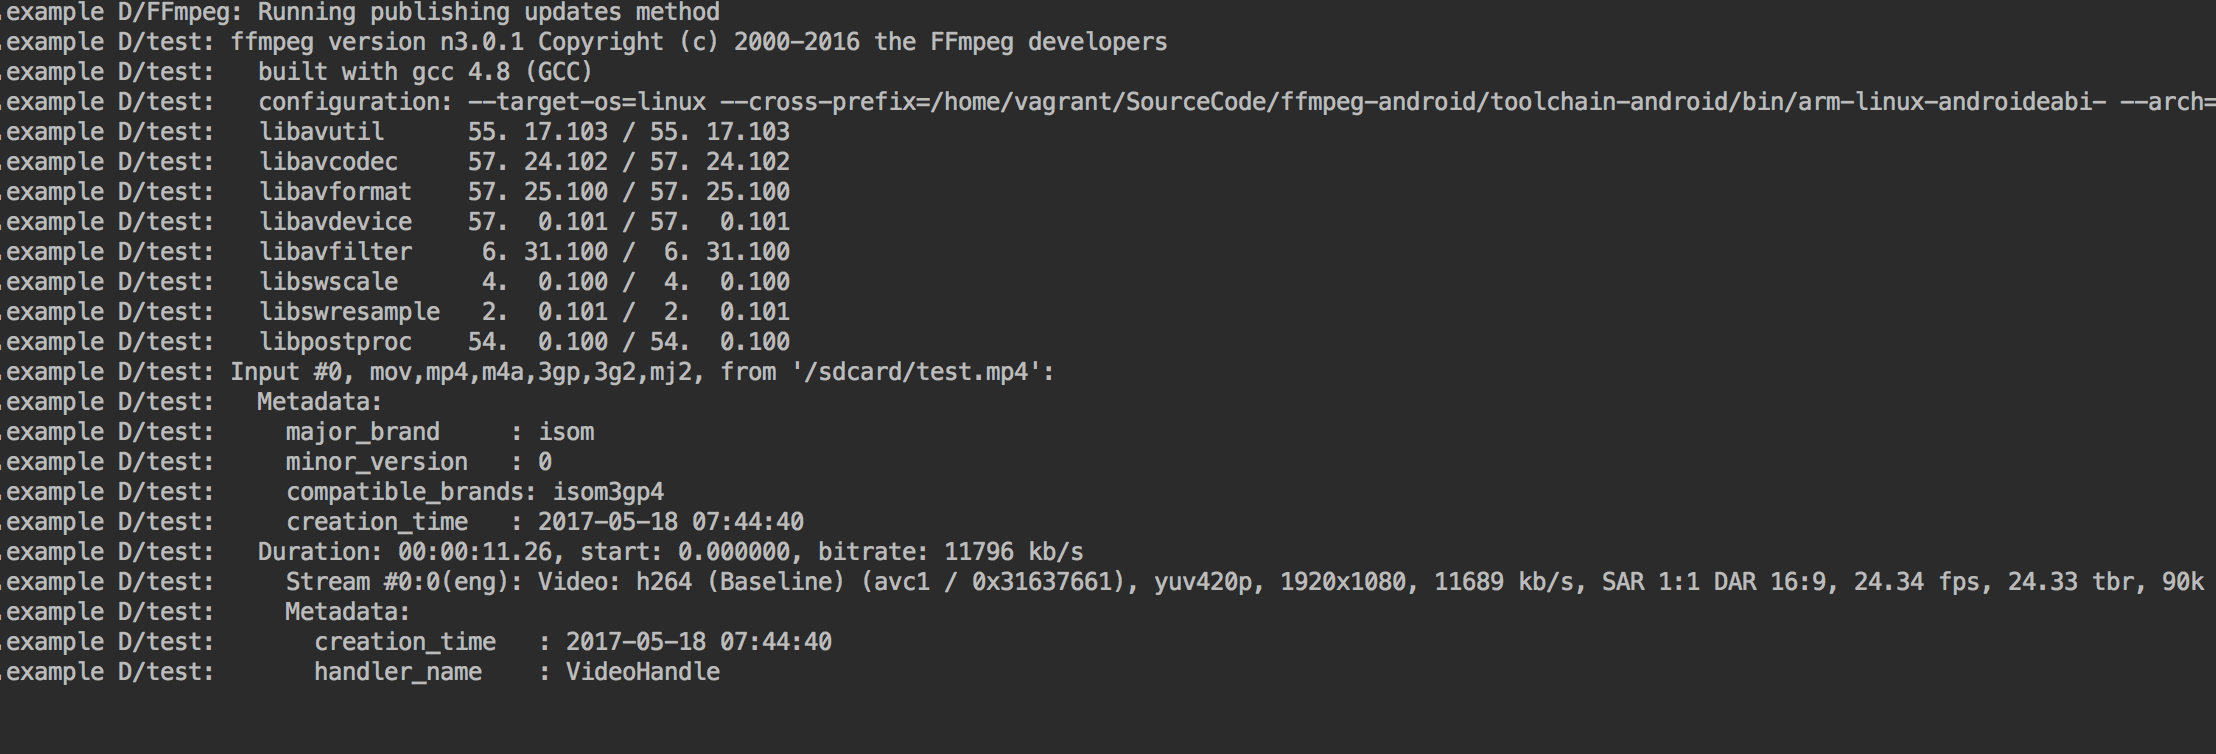 never return · Issue #236 · WritingMinds/ffmpeg-android-java